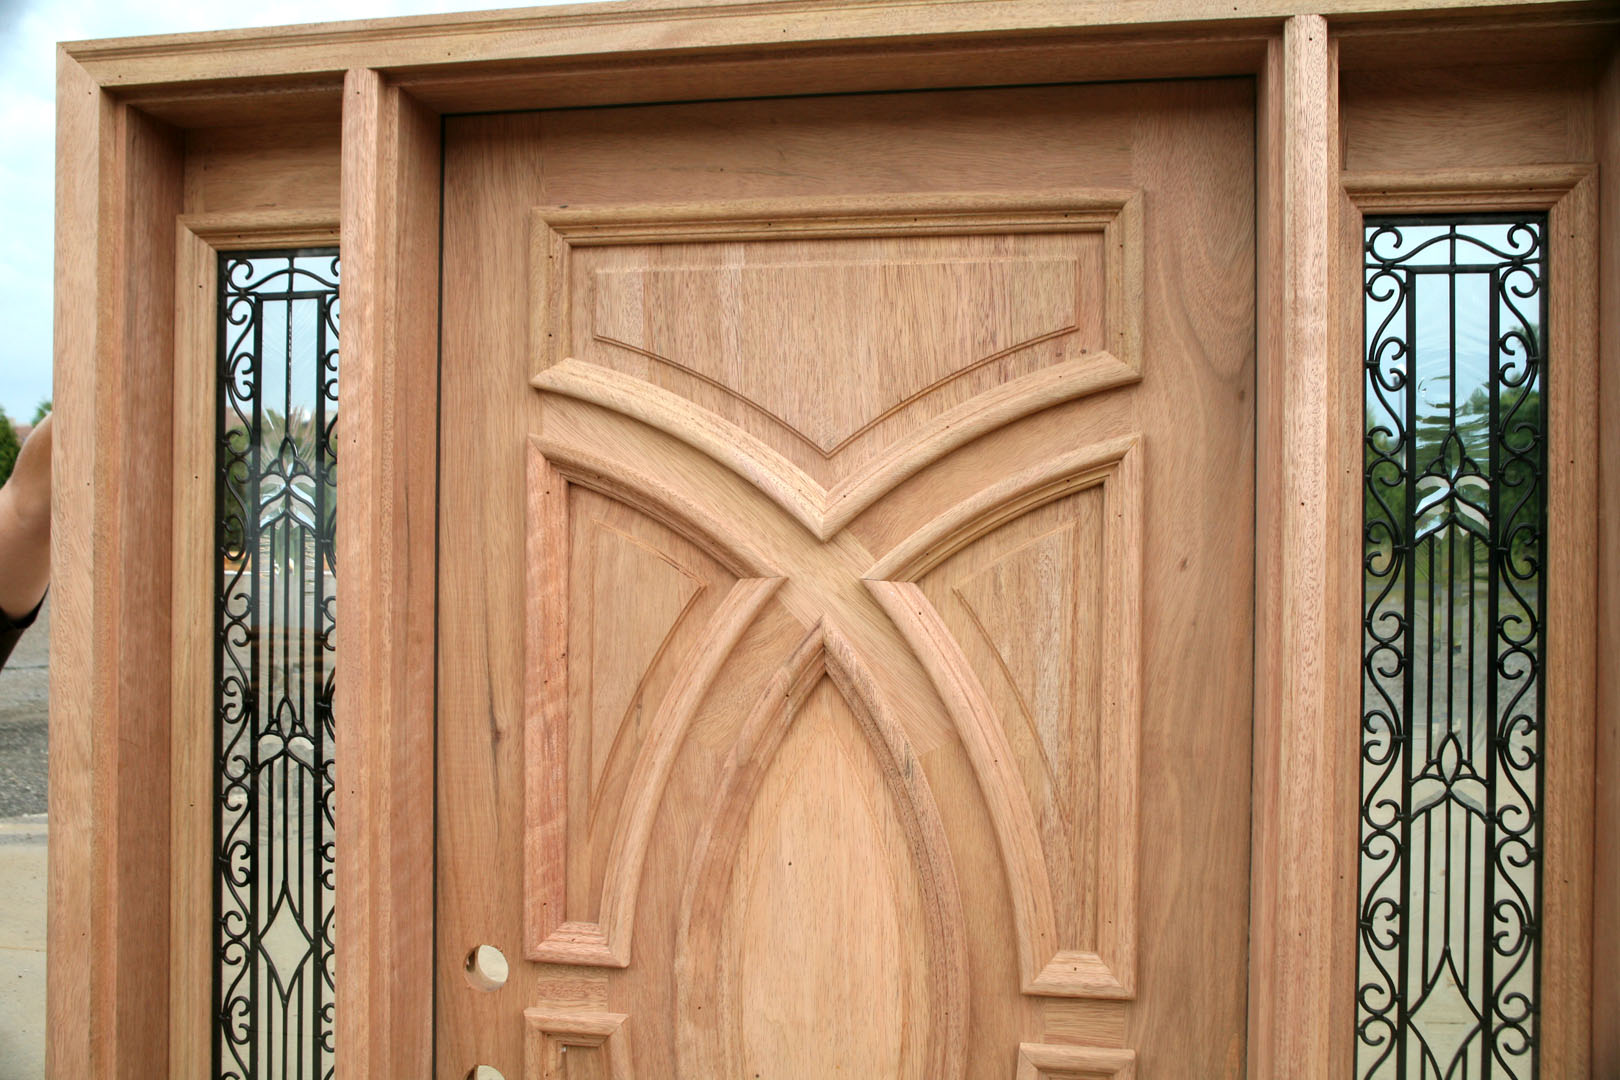 Wood Doors with Wrought Iron Glass Sidelights